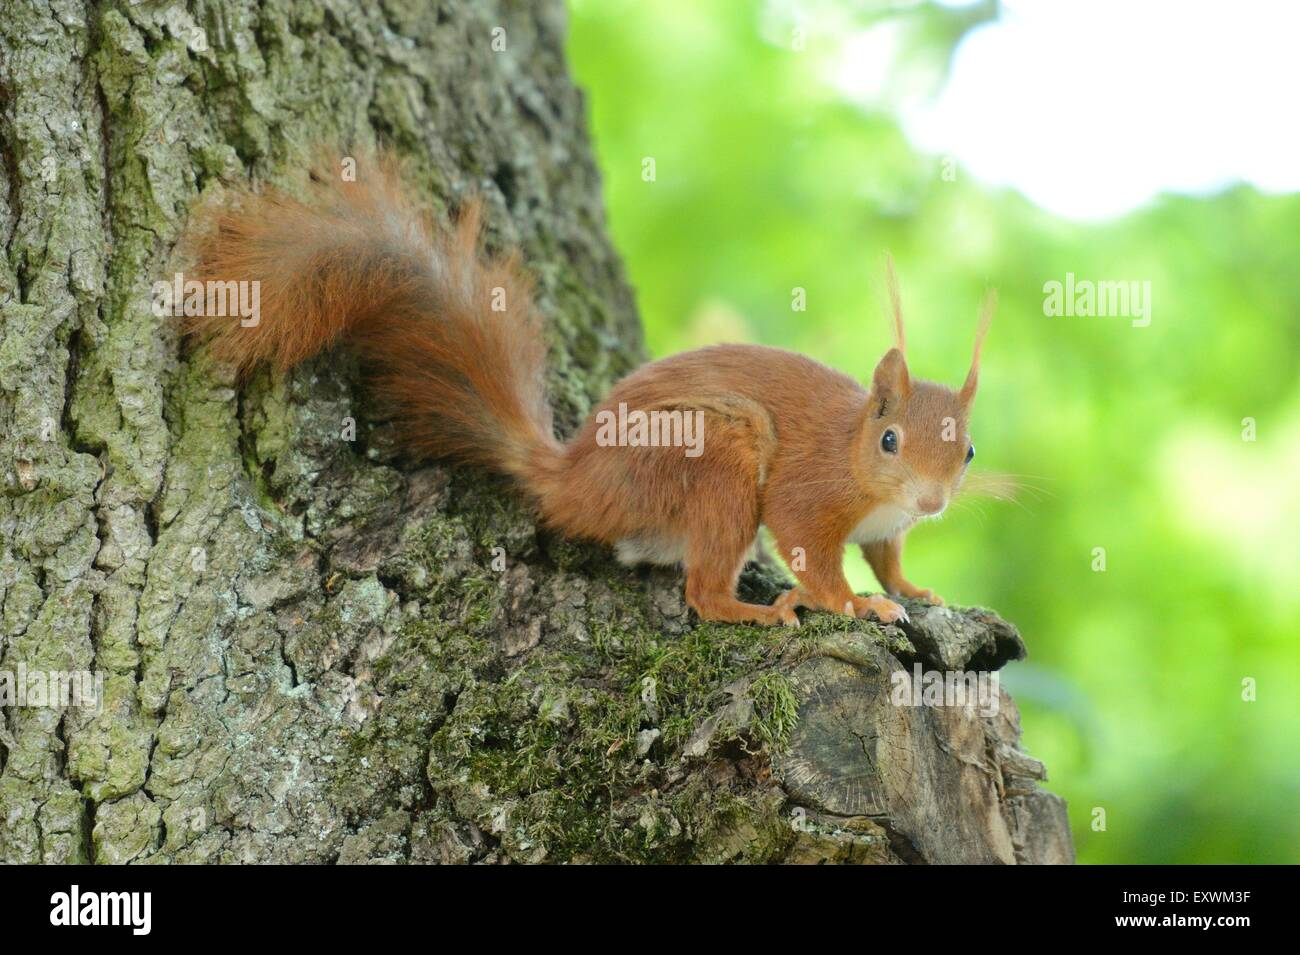 Red squirrel on a tree trunk - Stock Image